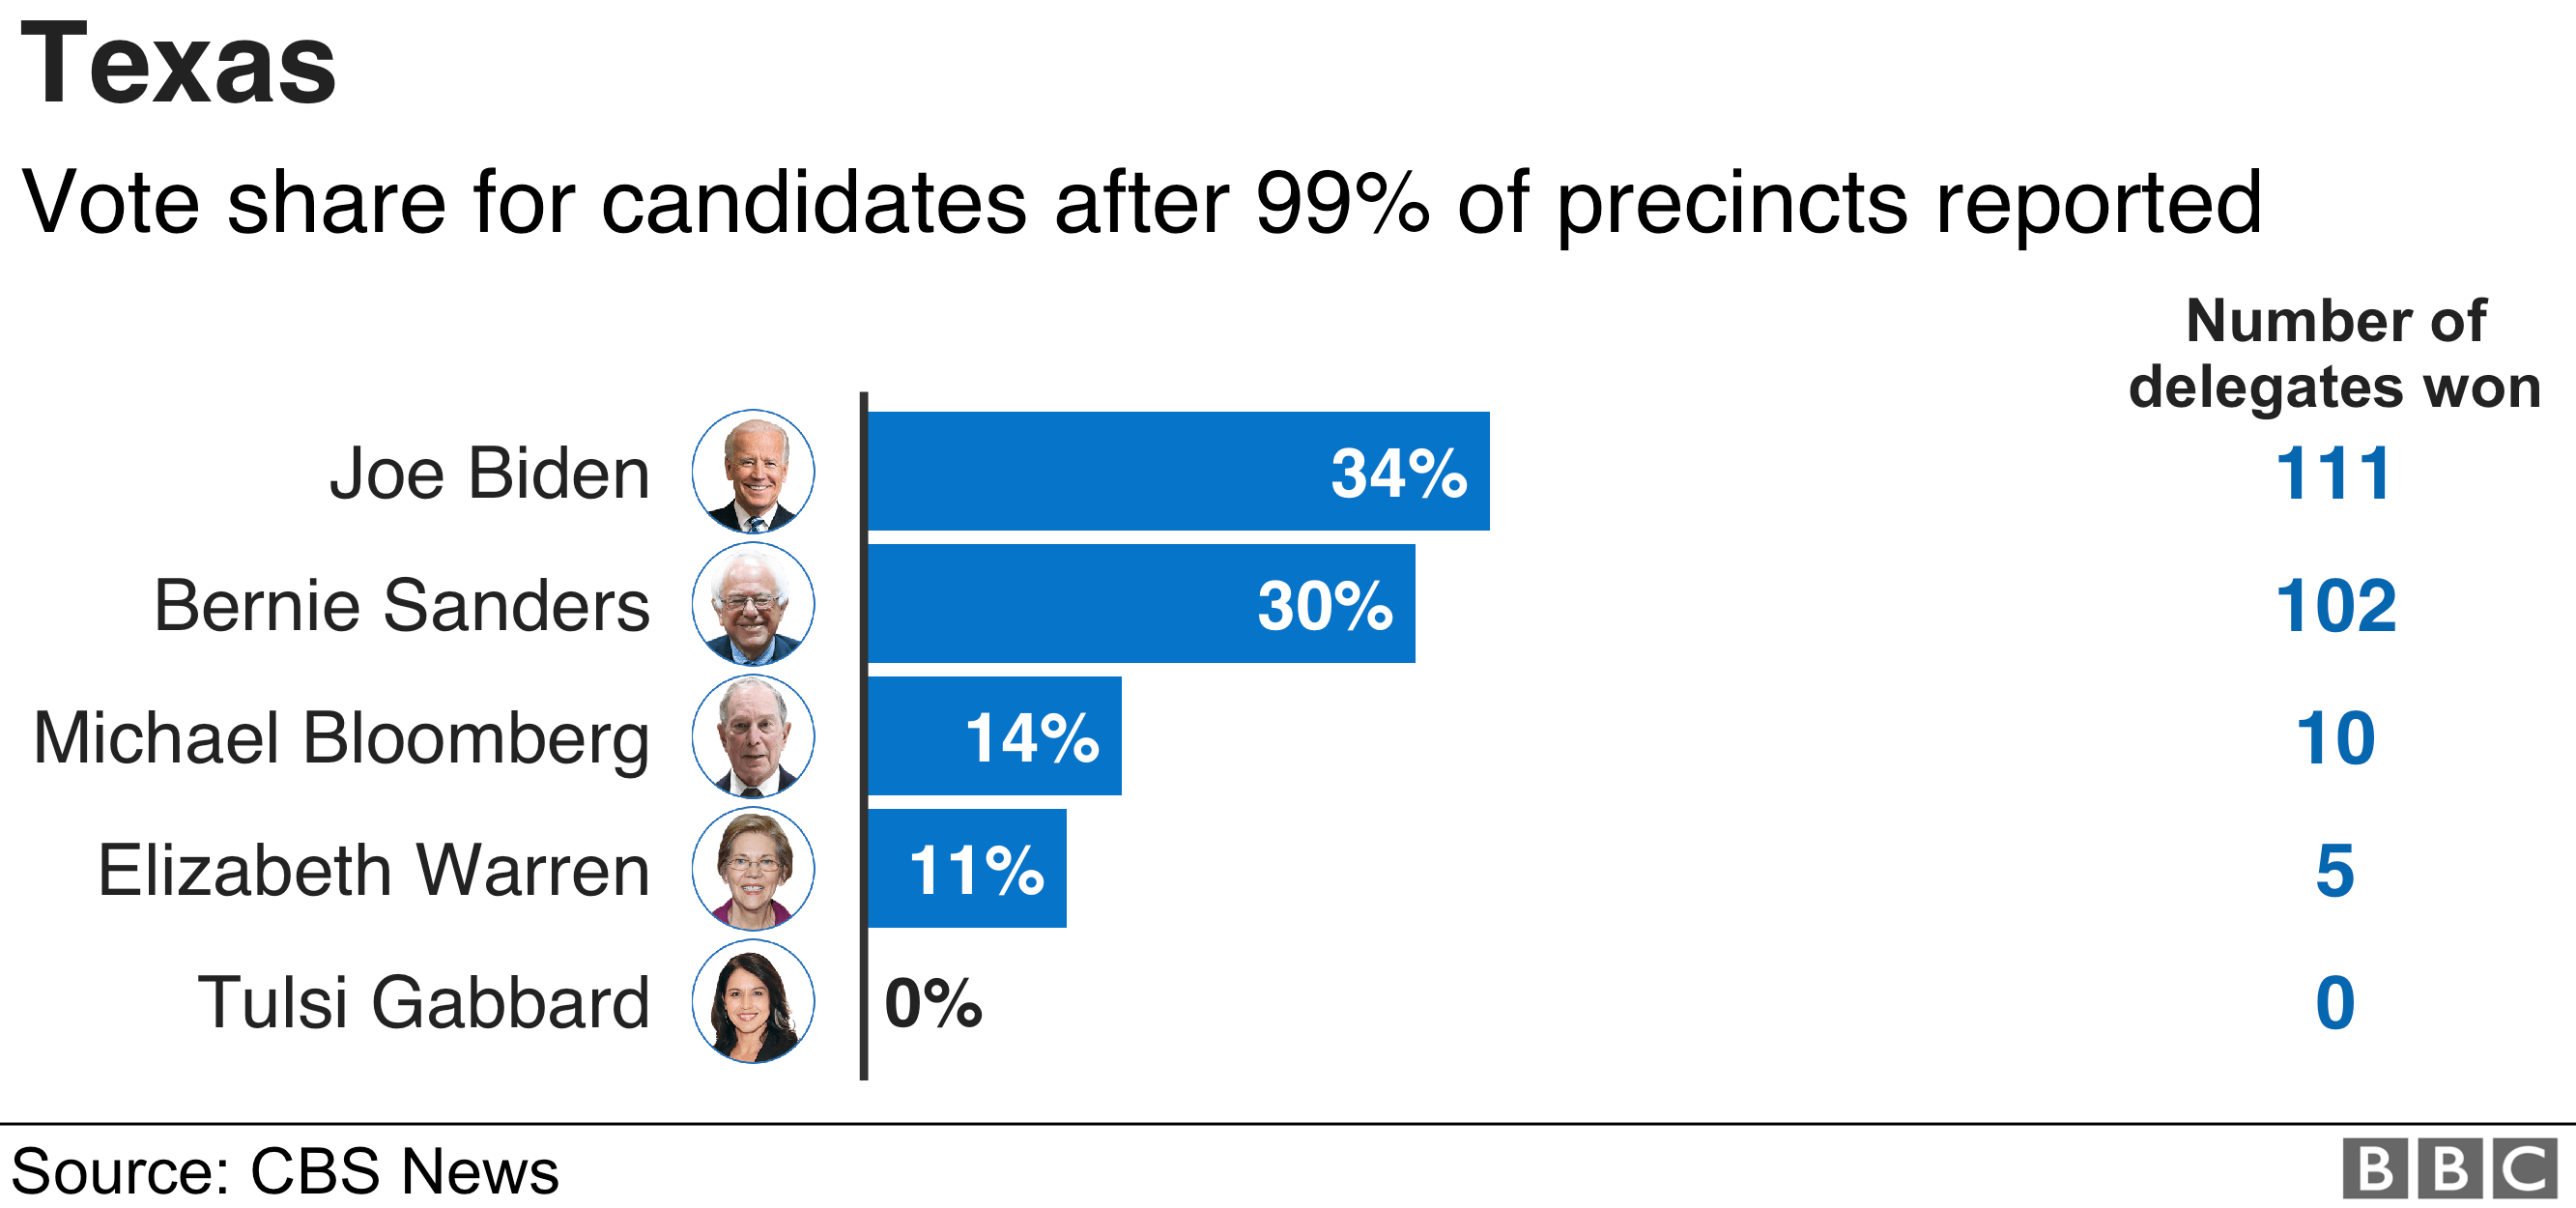 Texas results